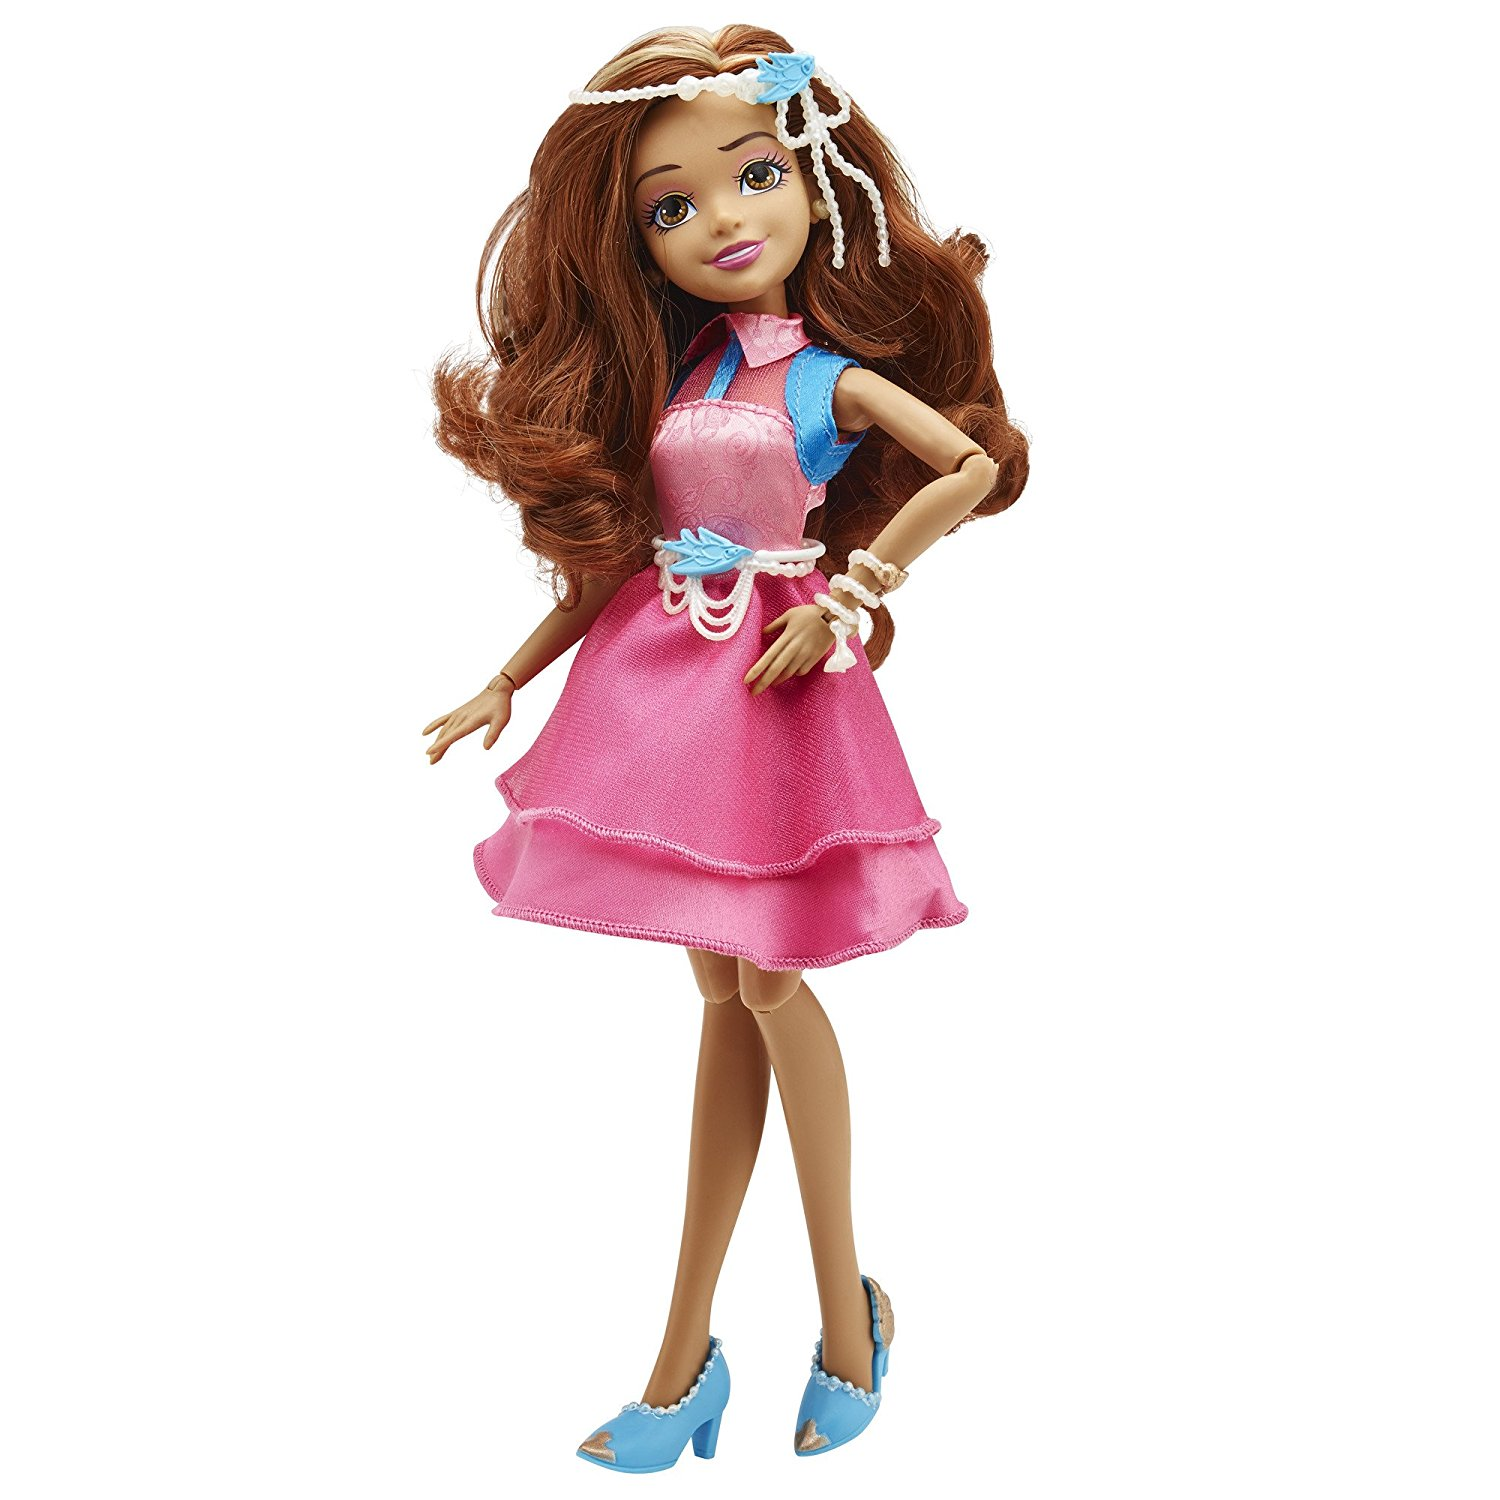 Signature Audrey Auradon Prep Doll, Disney Descendants doll inspired by Audrey of Auradon, the daughter of Sleeping Beauty By Disney Descendants